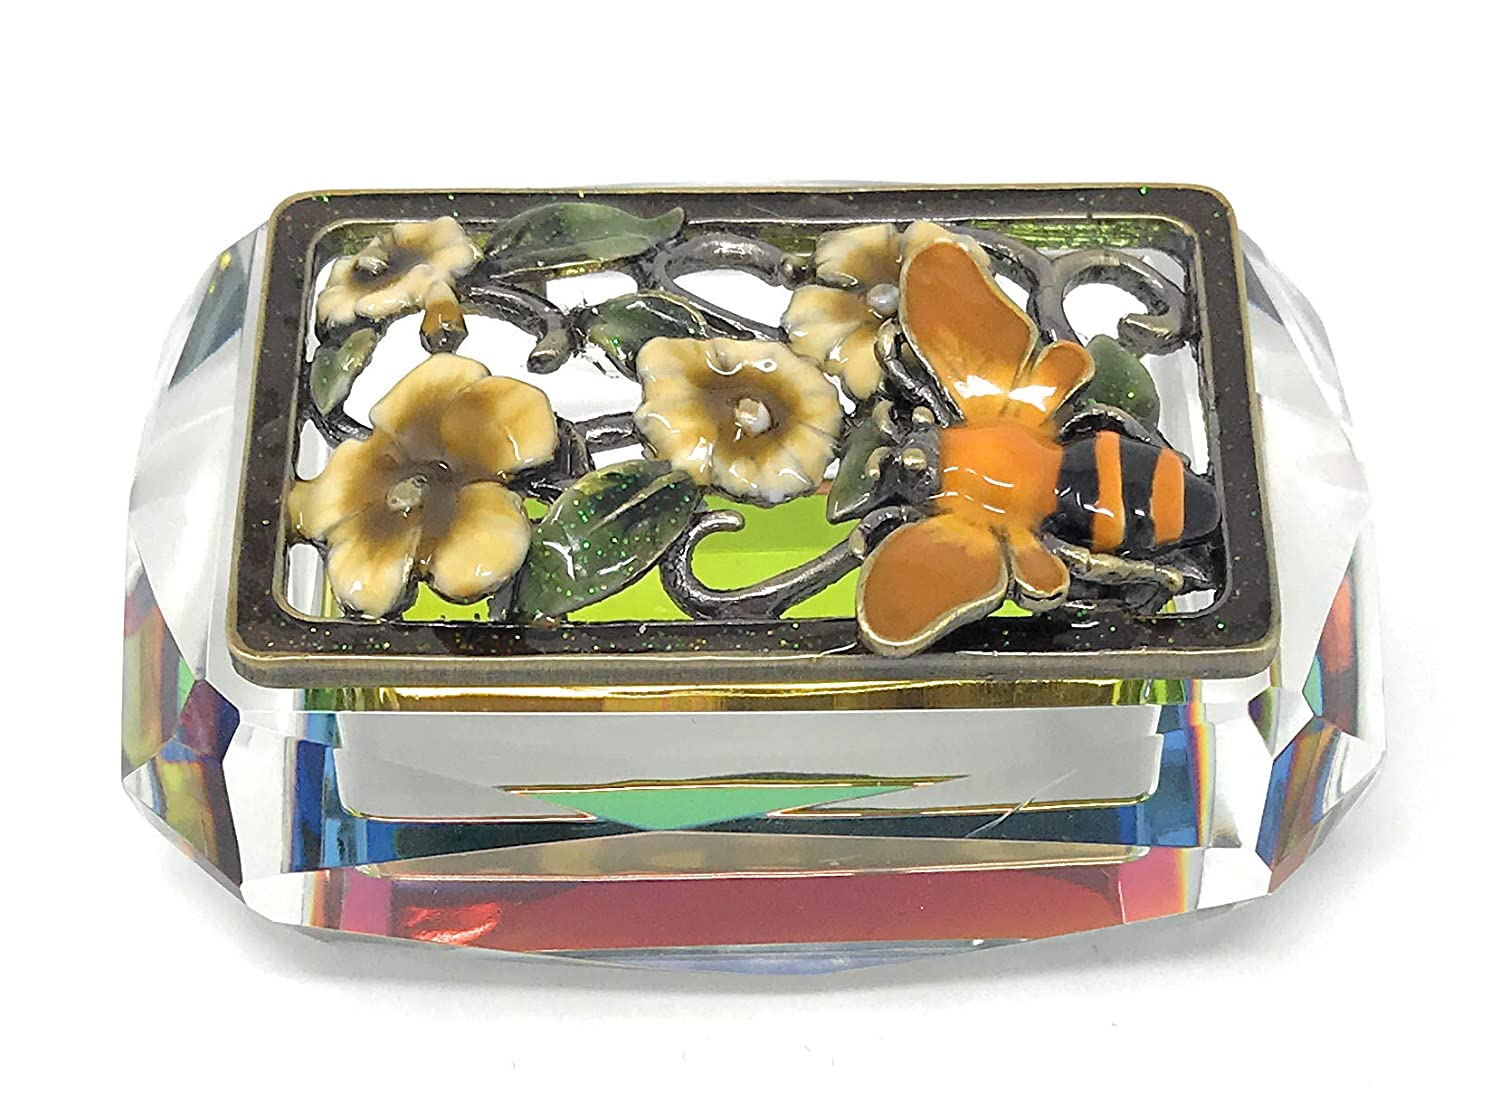 Accented with Austrian Crystals 3.25 Inches Long Kubla Crafts Enameled Honeybee and Flowers on Cut Glass Trinket Box